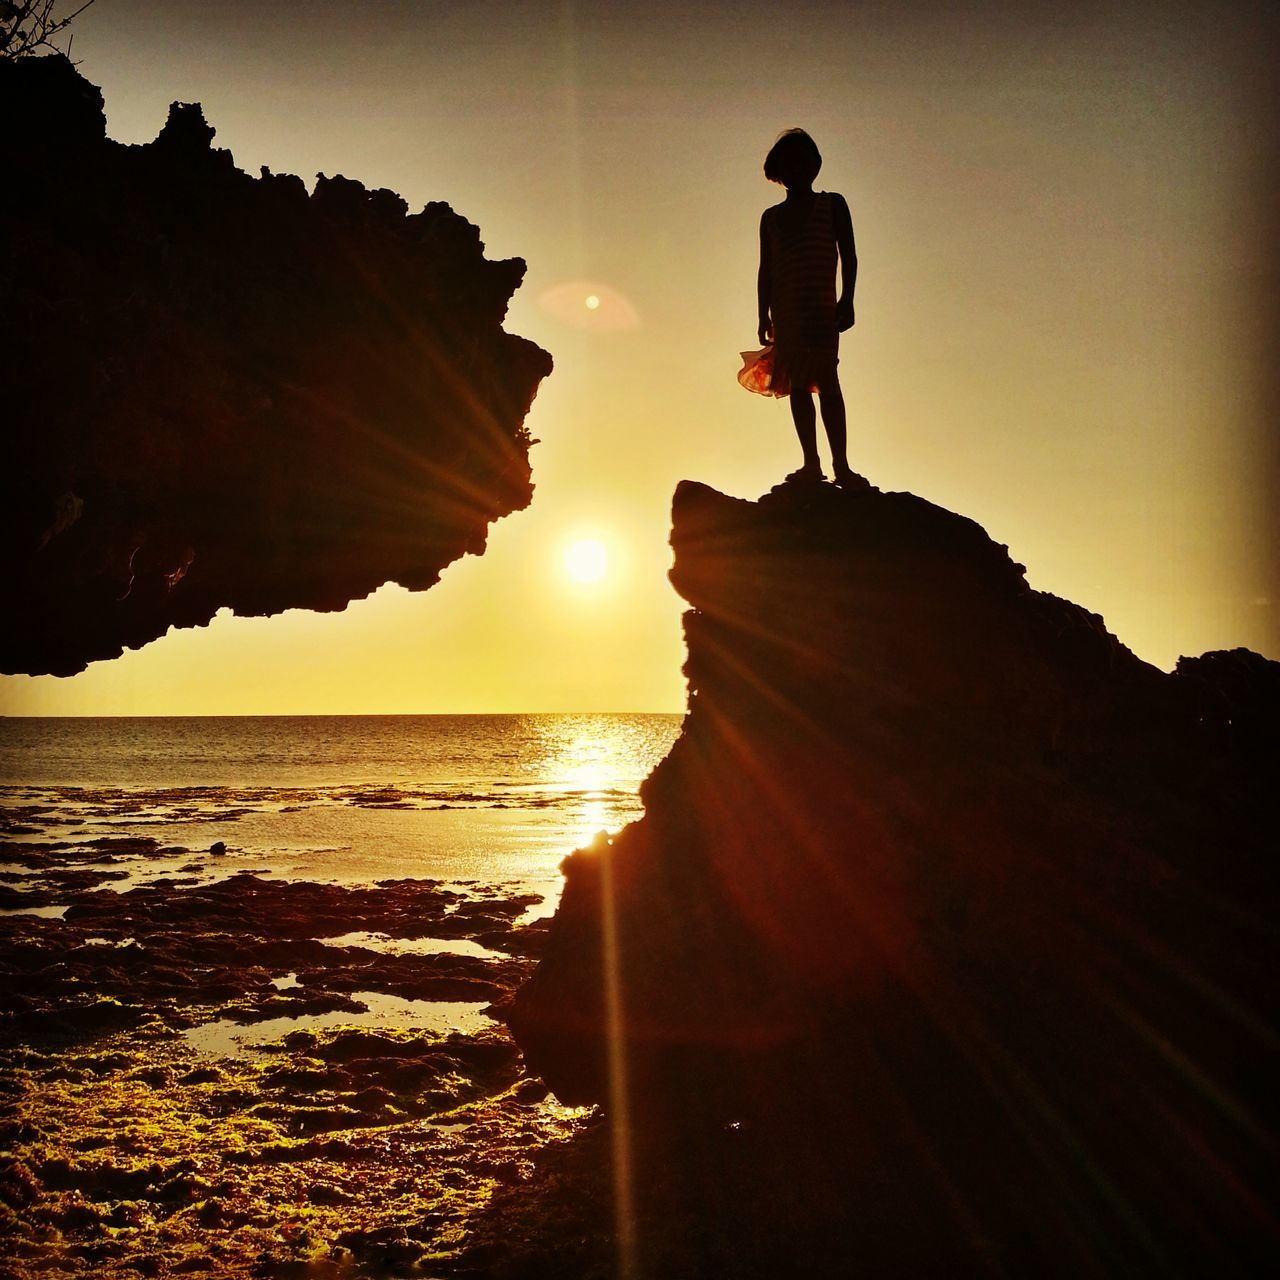 sunset, silhouette, full length, rock - object, sea, real people, standing, nature, adventure, leisure activity, one person, sky, men, cliff, scenics, outdoors, lifestyles, beach, beauty in nature, women, water, horizon over water, day, people